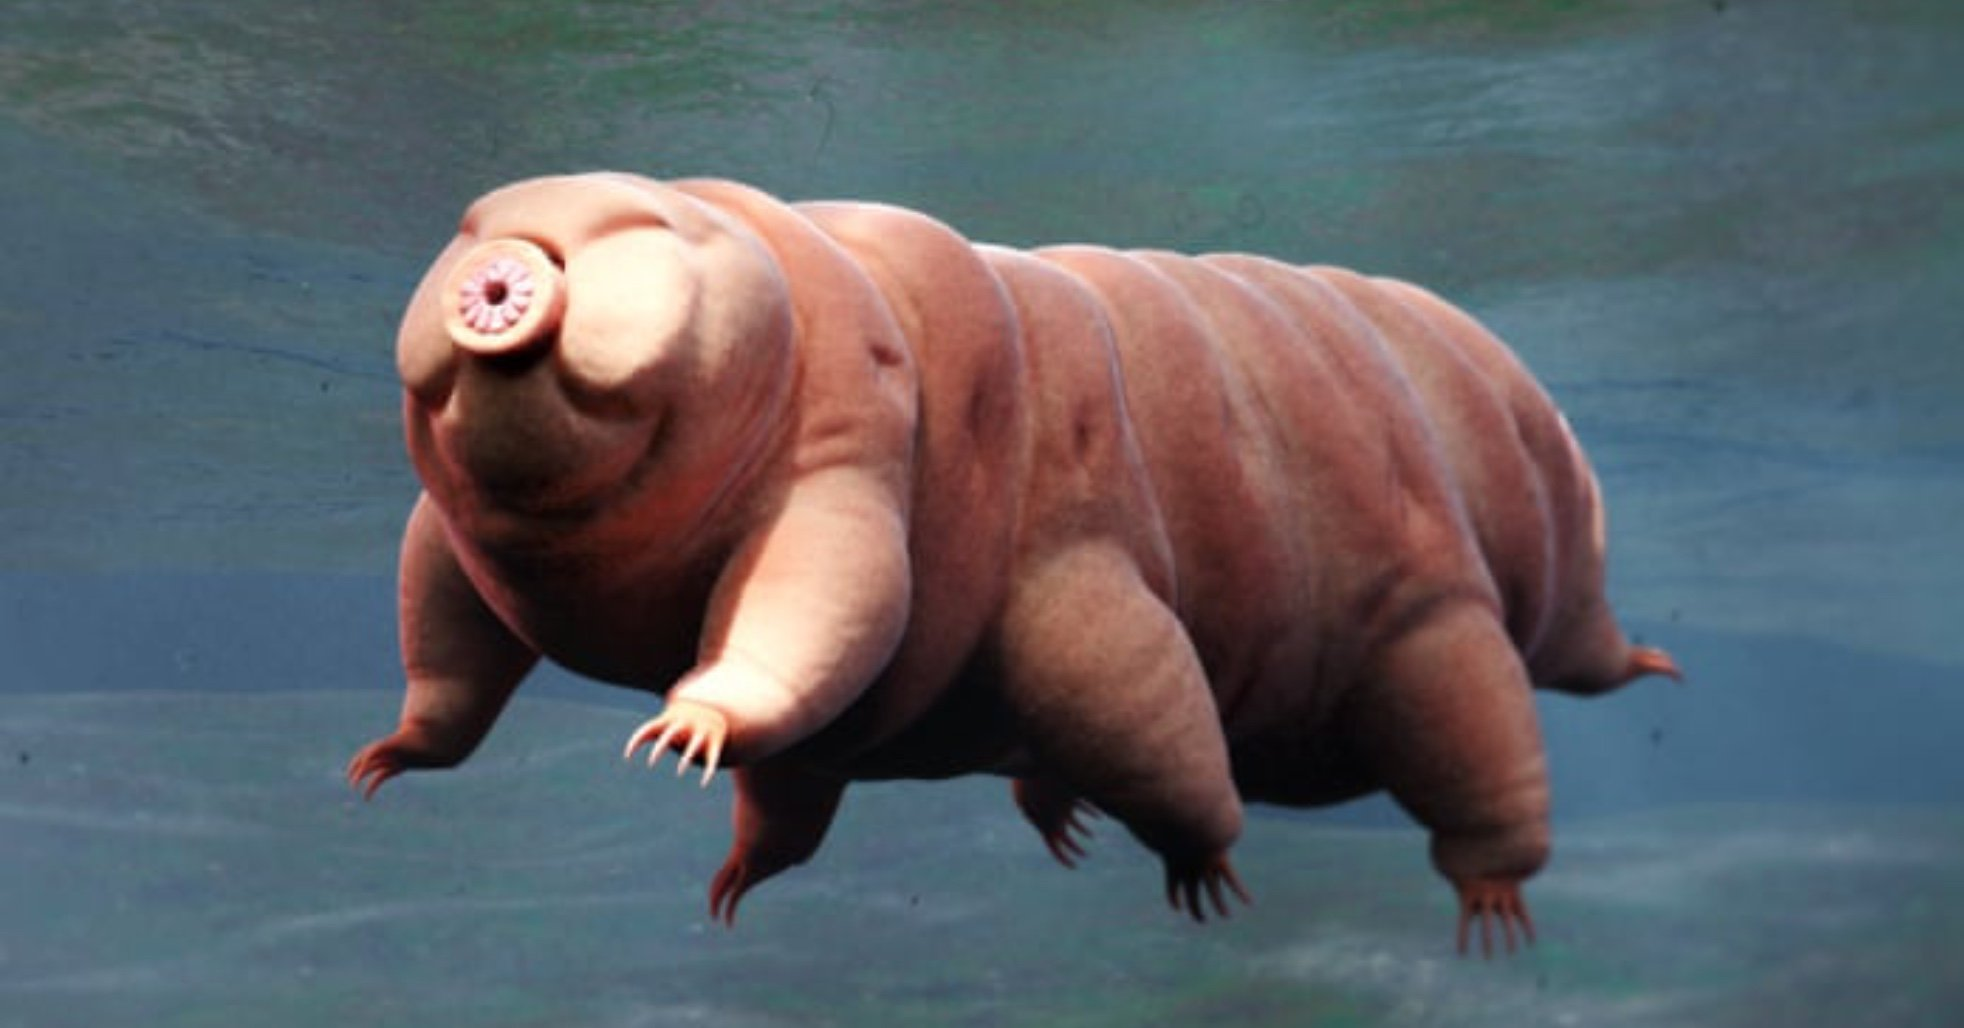 sus.jpg?resize=412,275 - 10 of the World's Strangest Animals You Have Never Seen Before